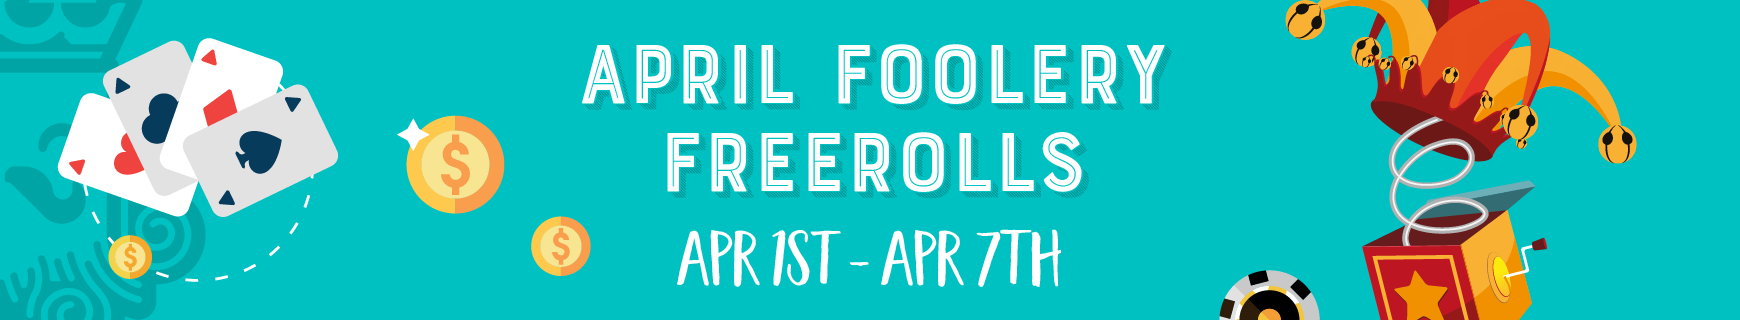 April foolery freerolls %28870 x 160%29 2x